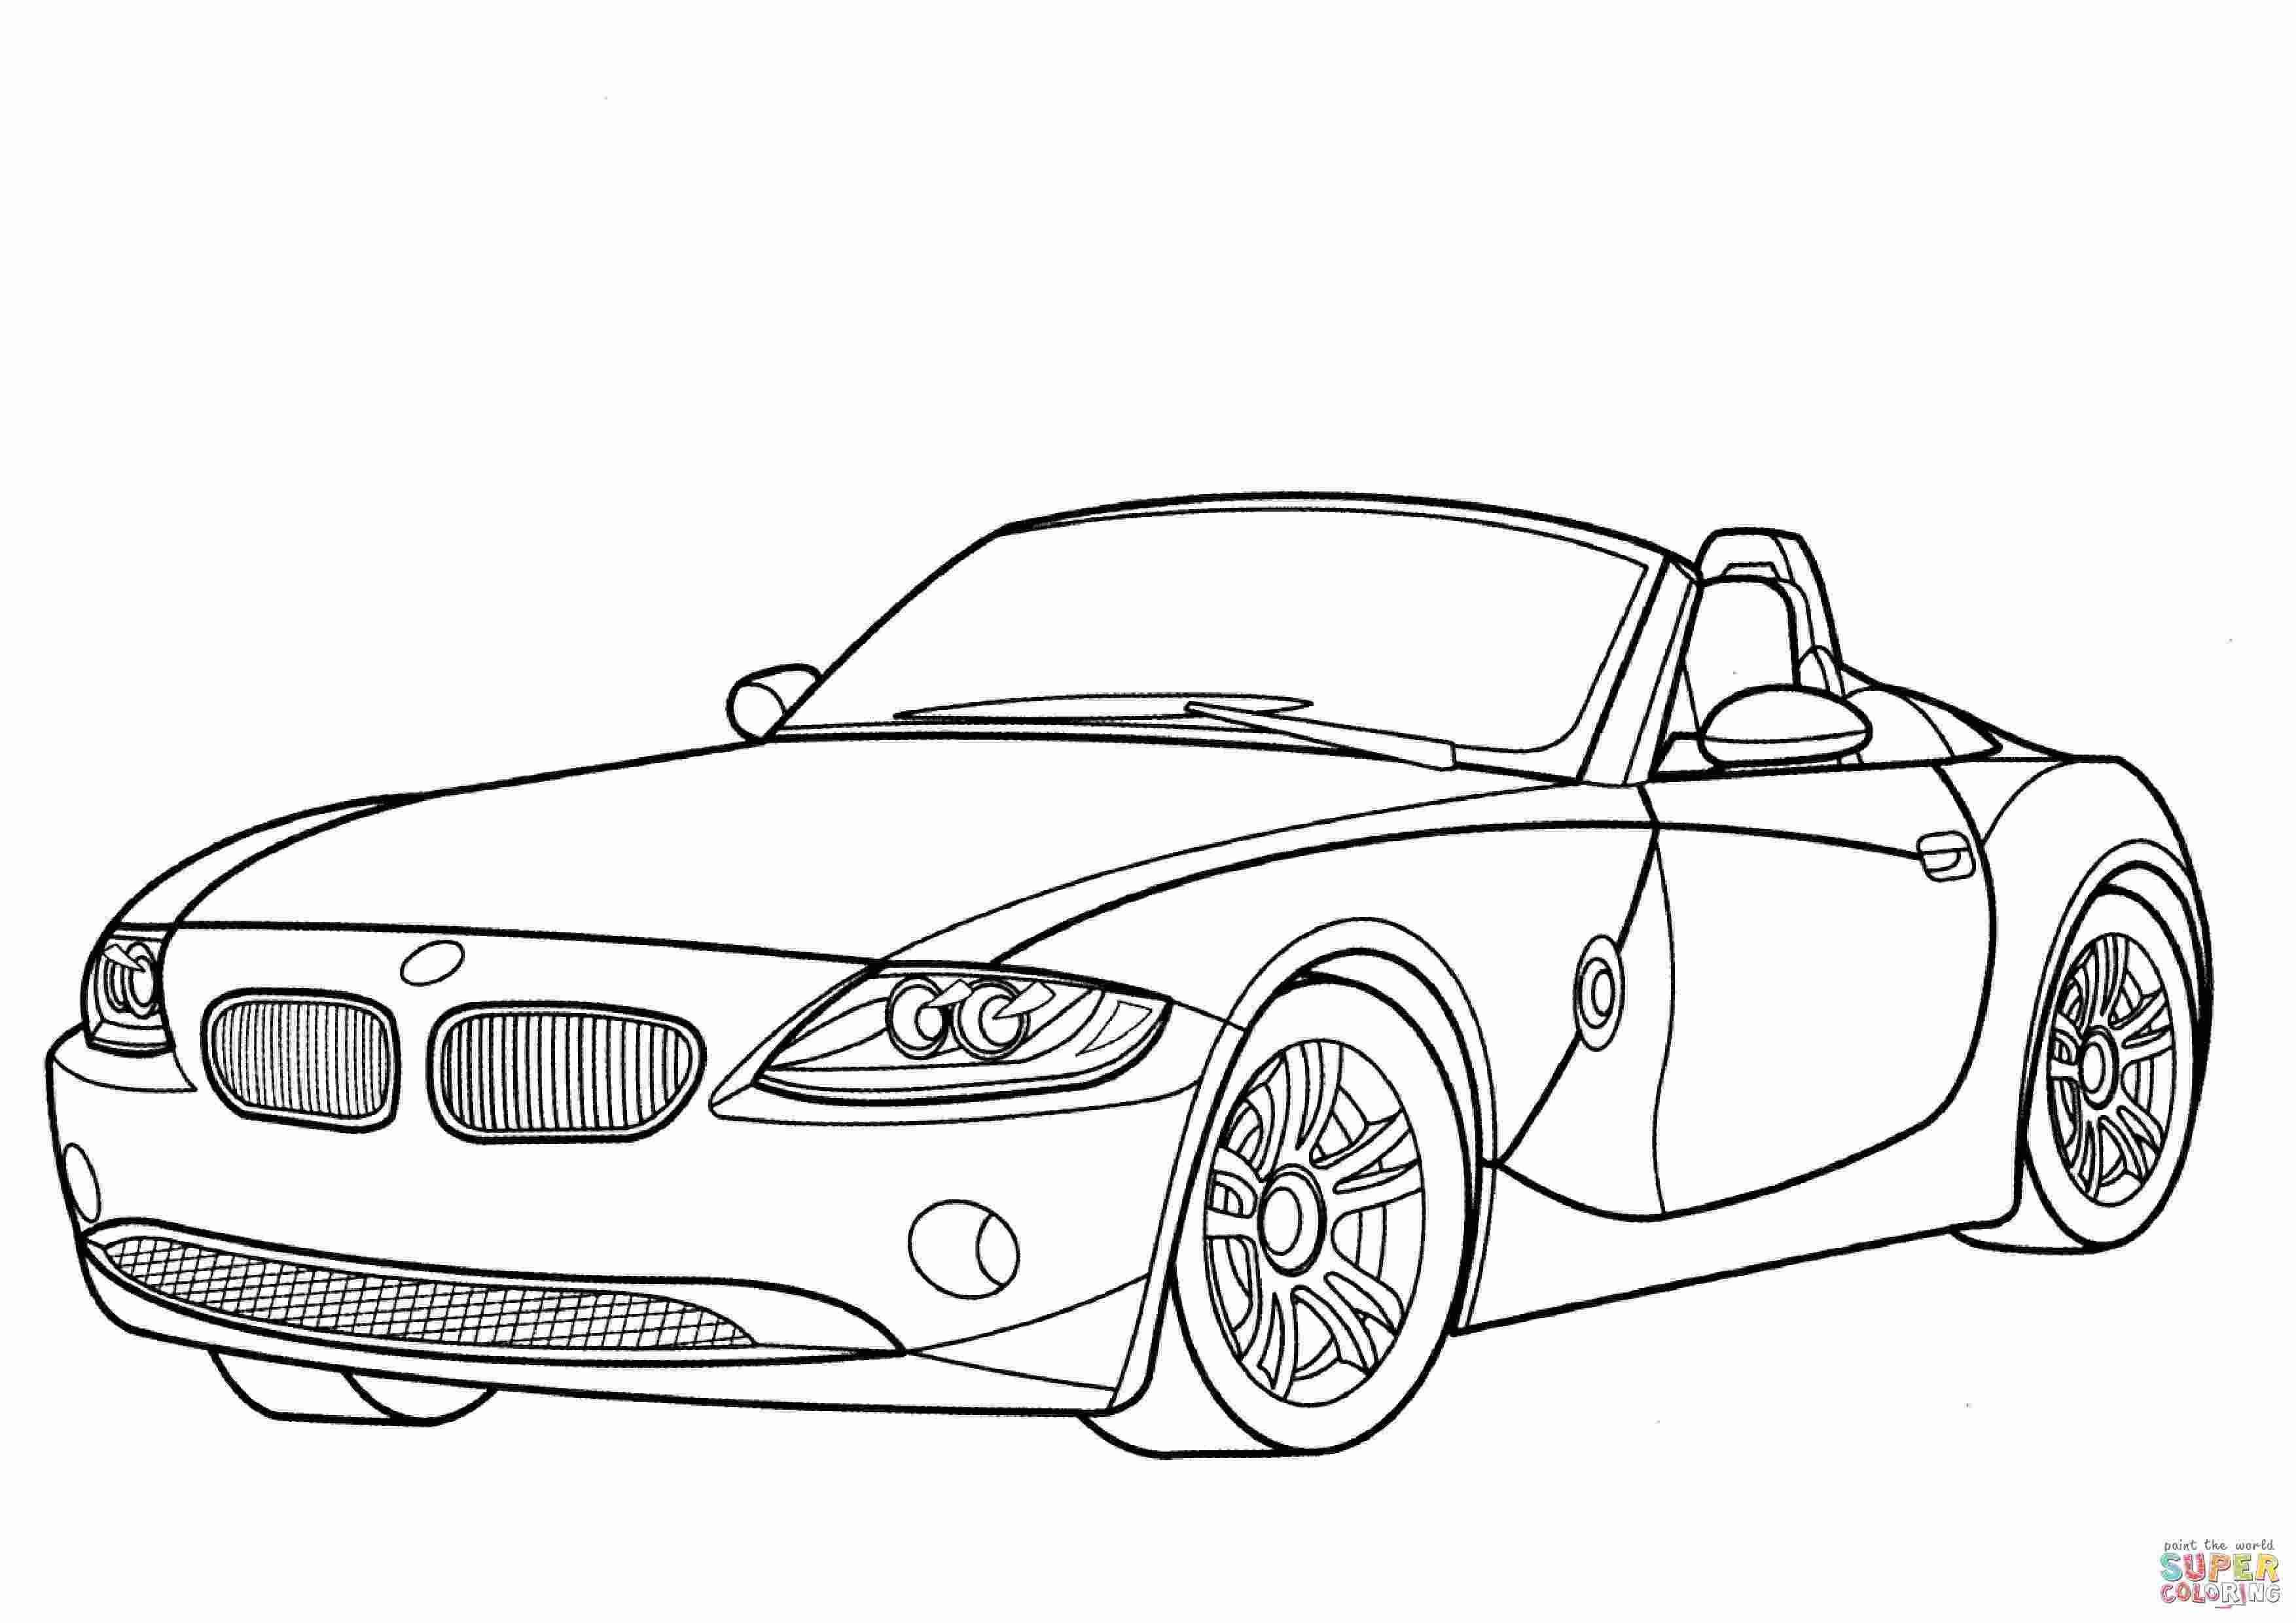 Bmw I8 Coloring Pages Cars Coloring Pages Coloring Pages Bmw Z4